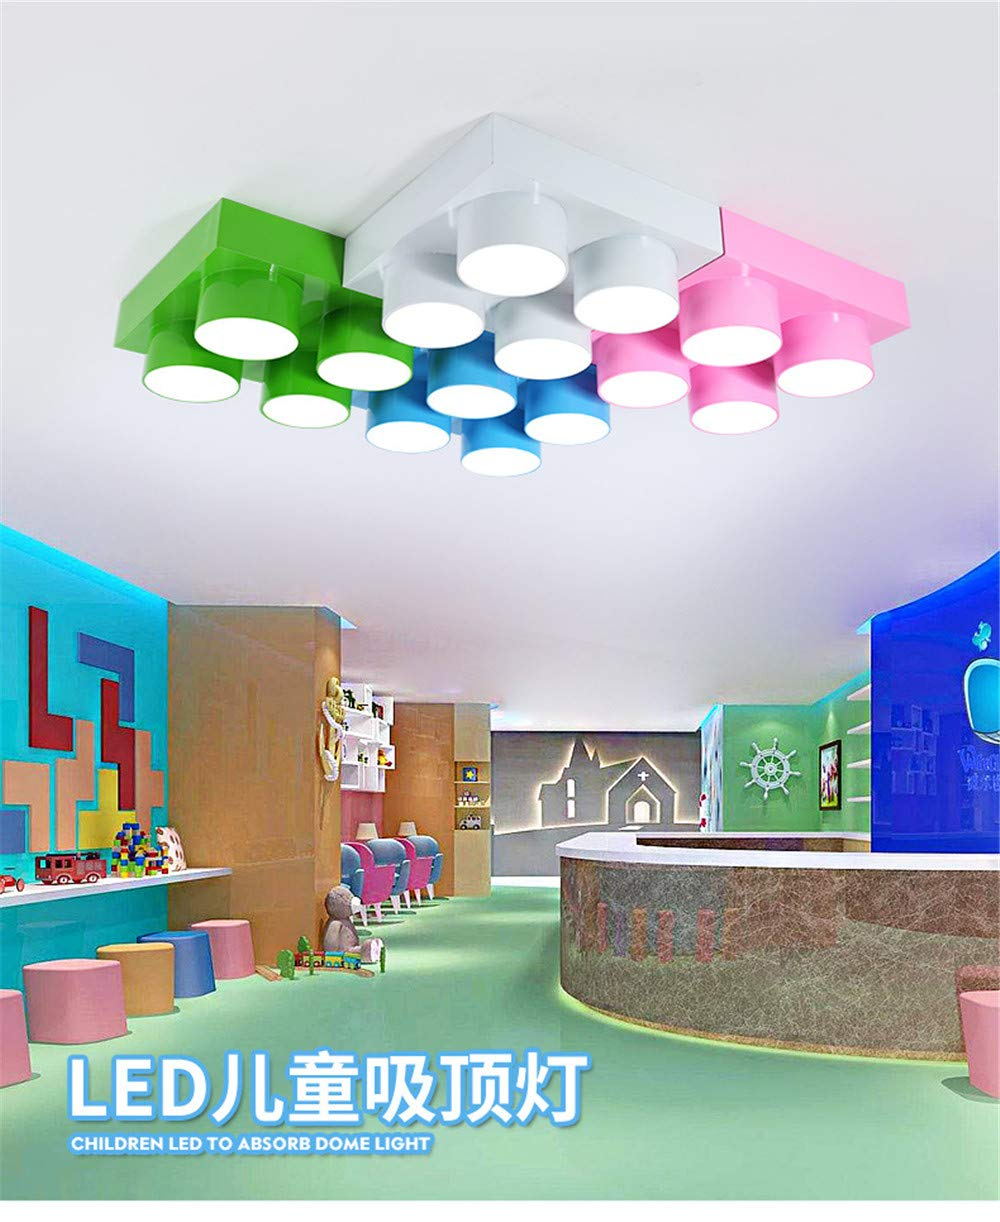 Personalidad Creativa Lego Bloques LED Acrílico Dormitorio Decorar Luces de Techo, Perfect Family Kids Christmas Gifts, Pink -80 * 40 * 9cm